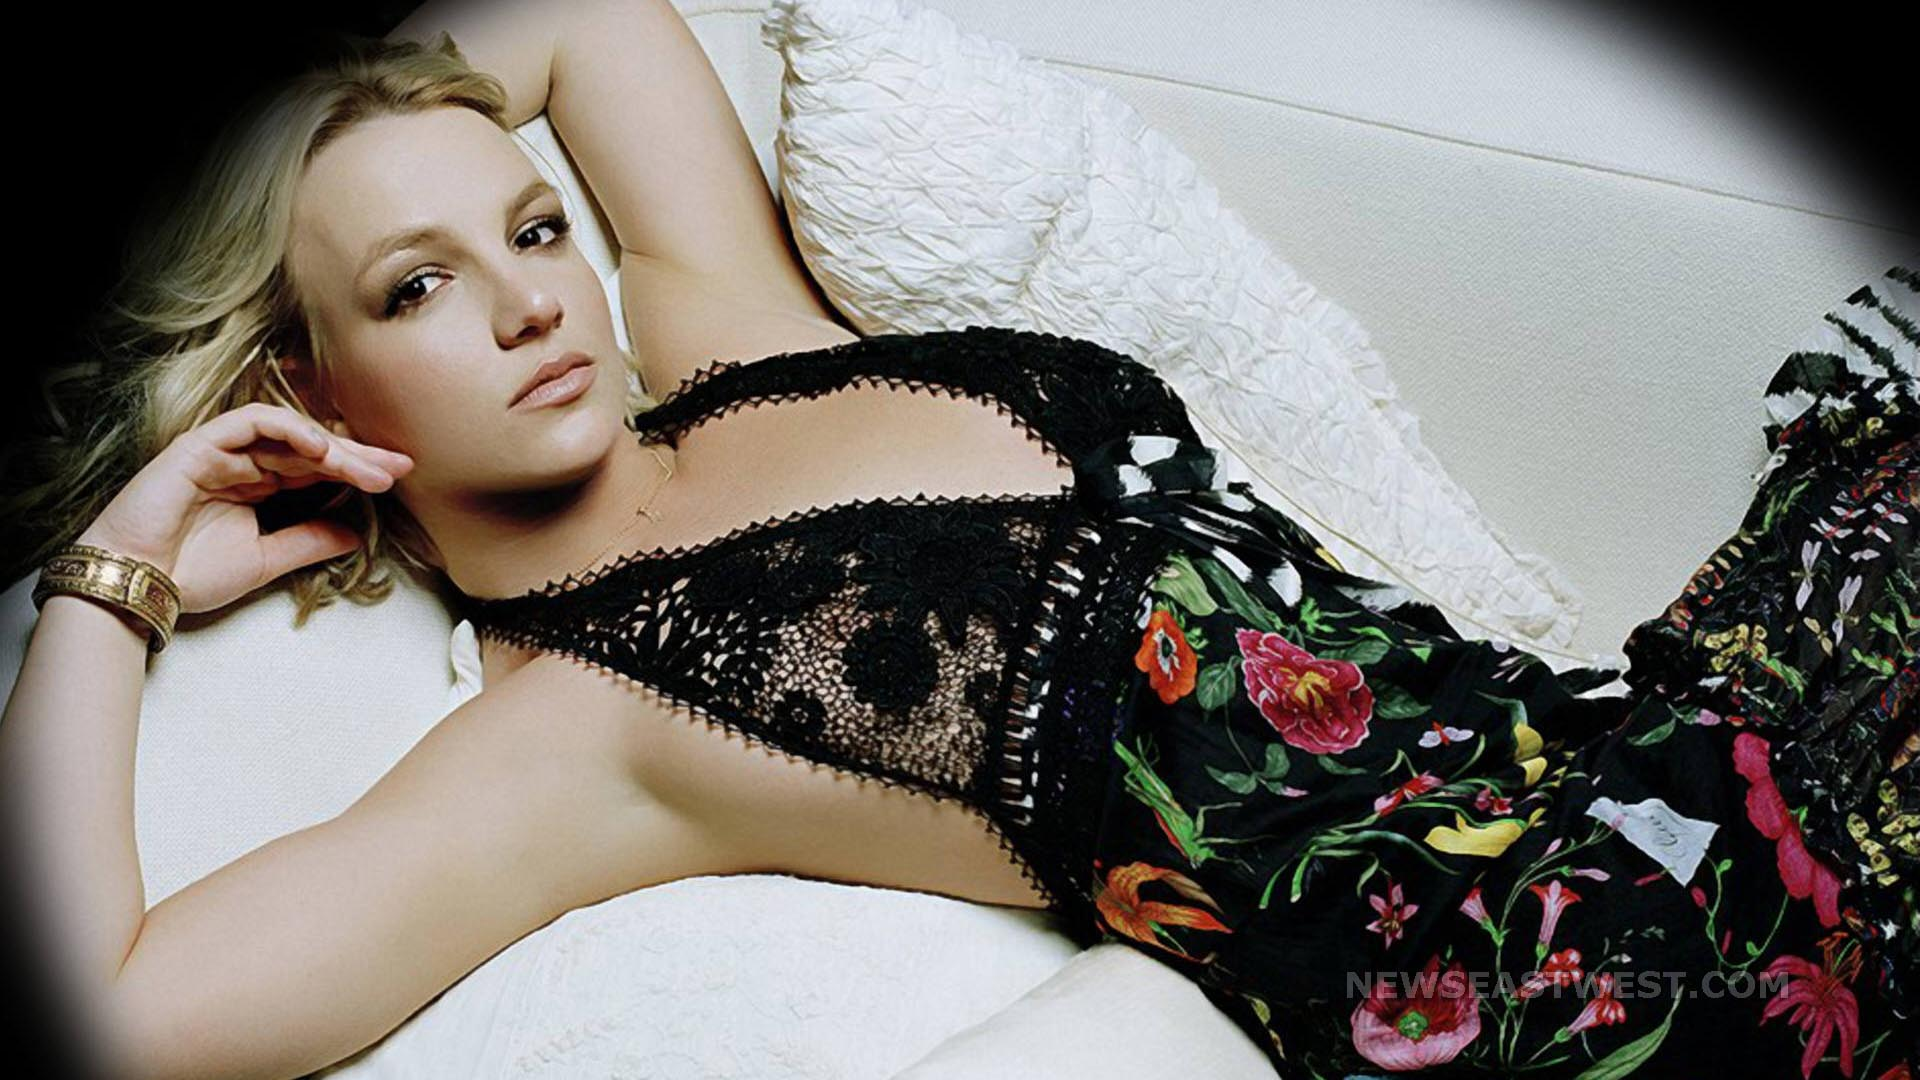 britney spears hot wallpaper